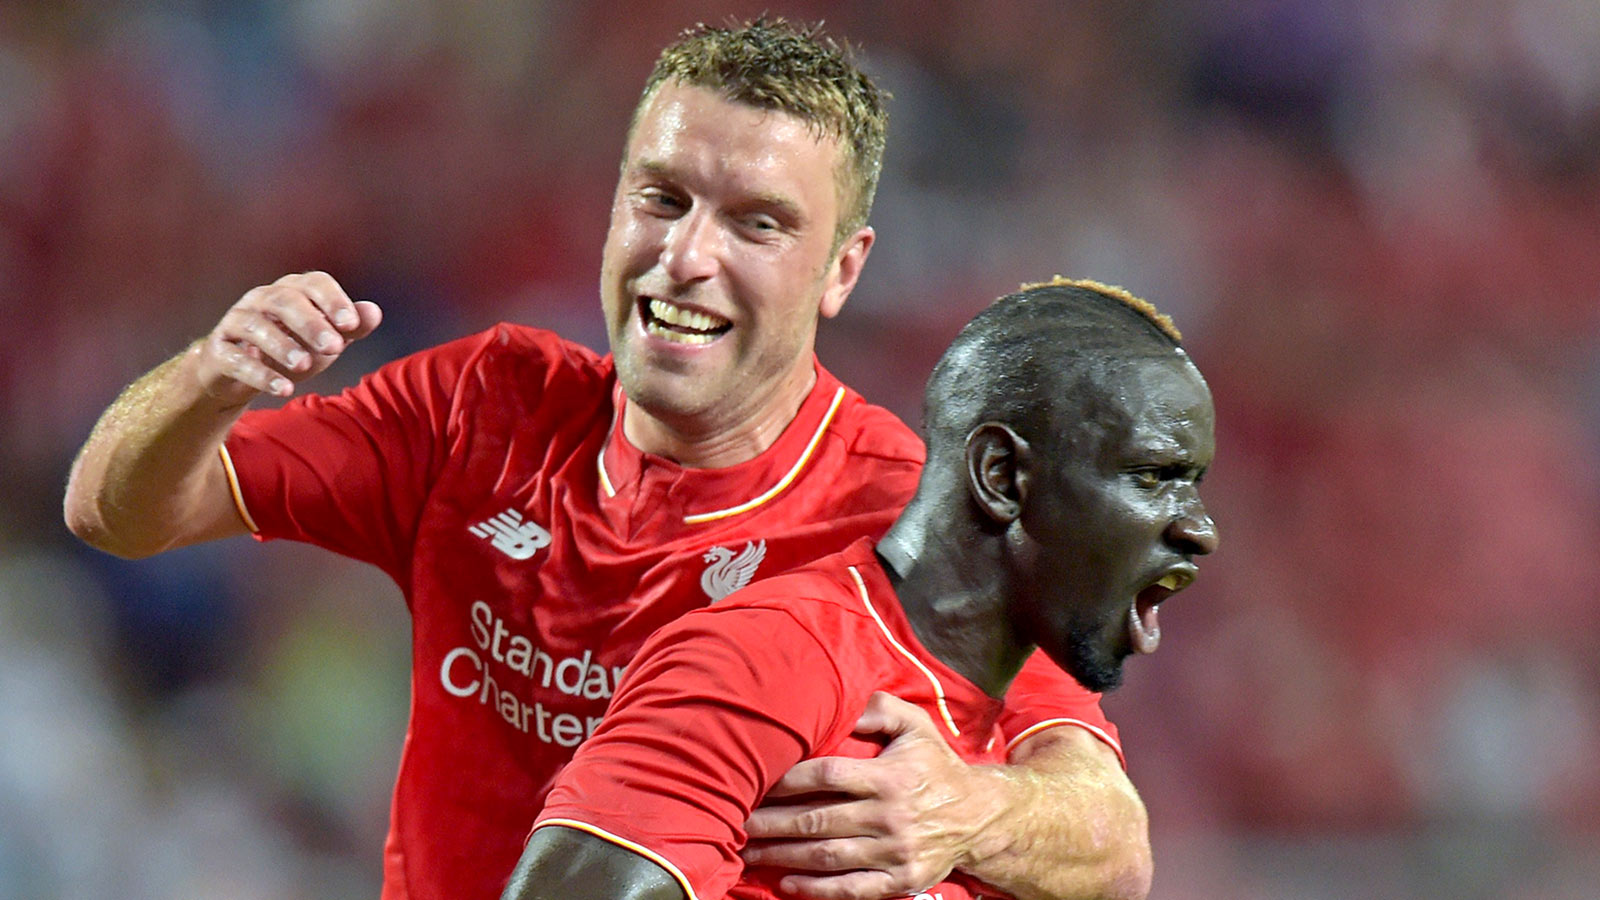 Liverpool opens preseason with easy victory over Thai All-Stars